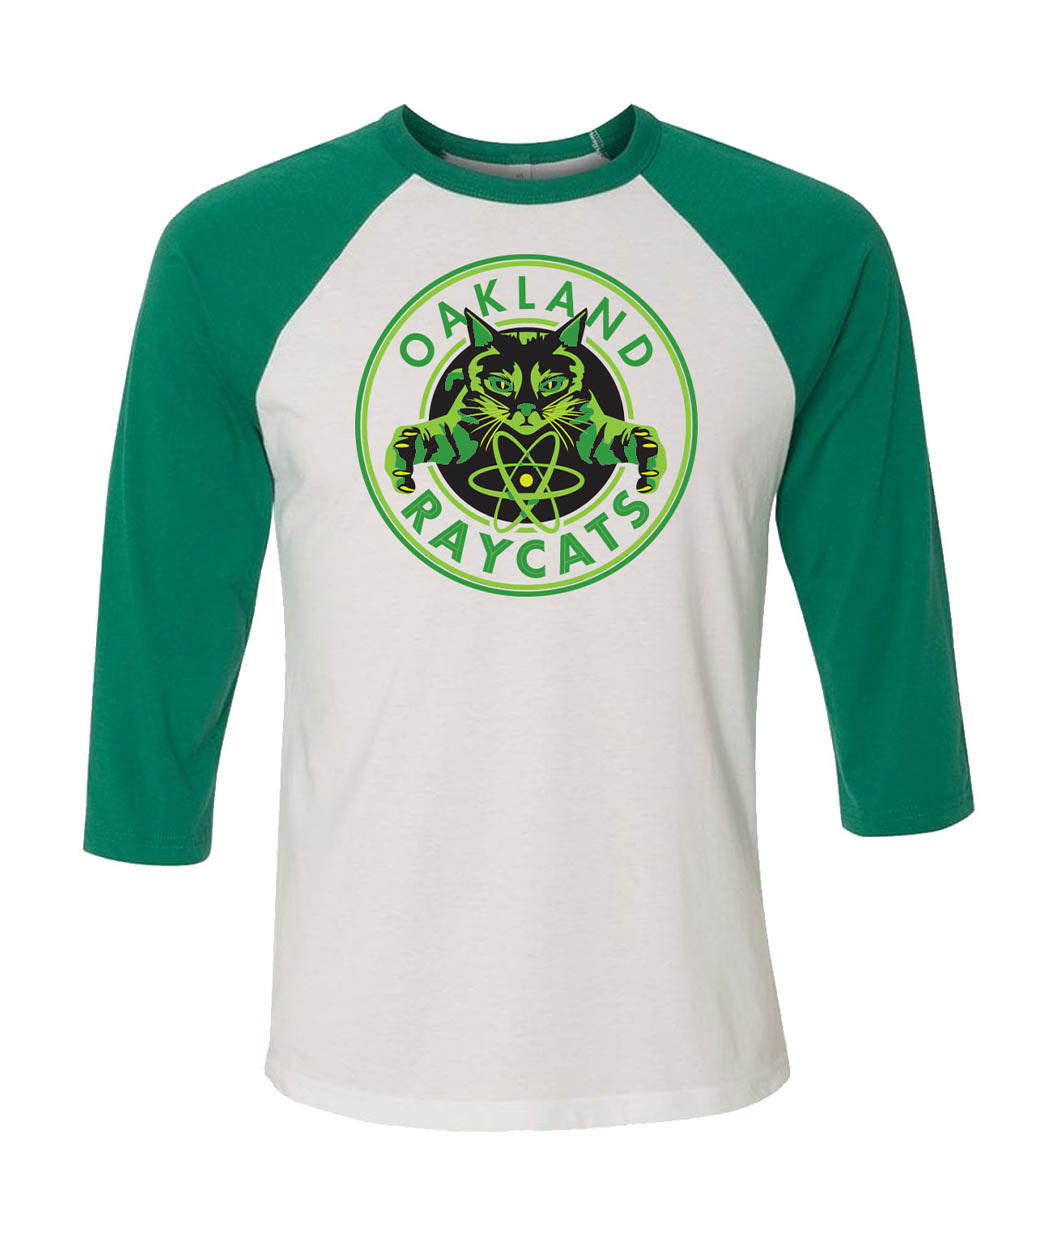 Oakland Raycats Shirt